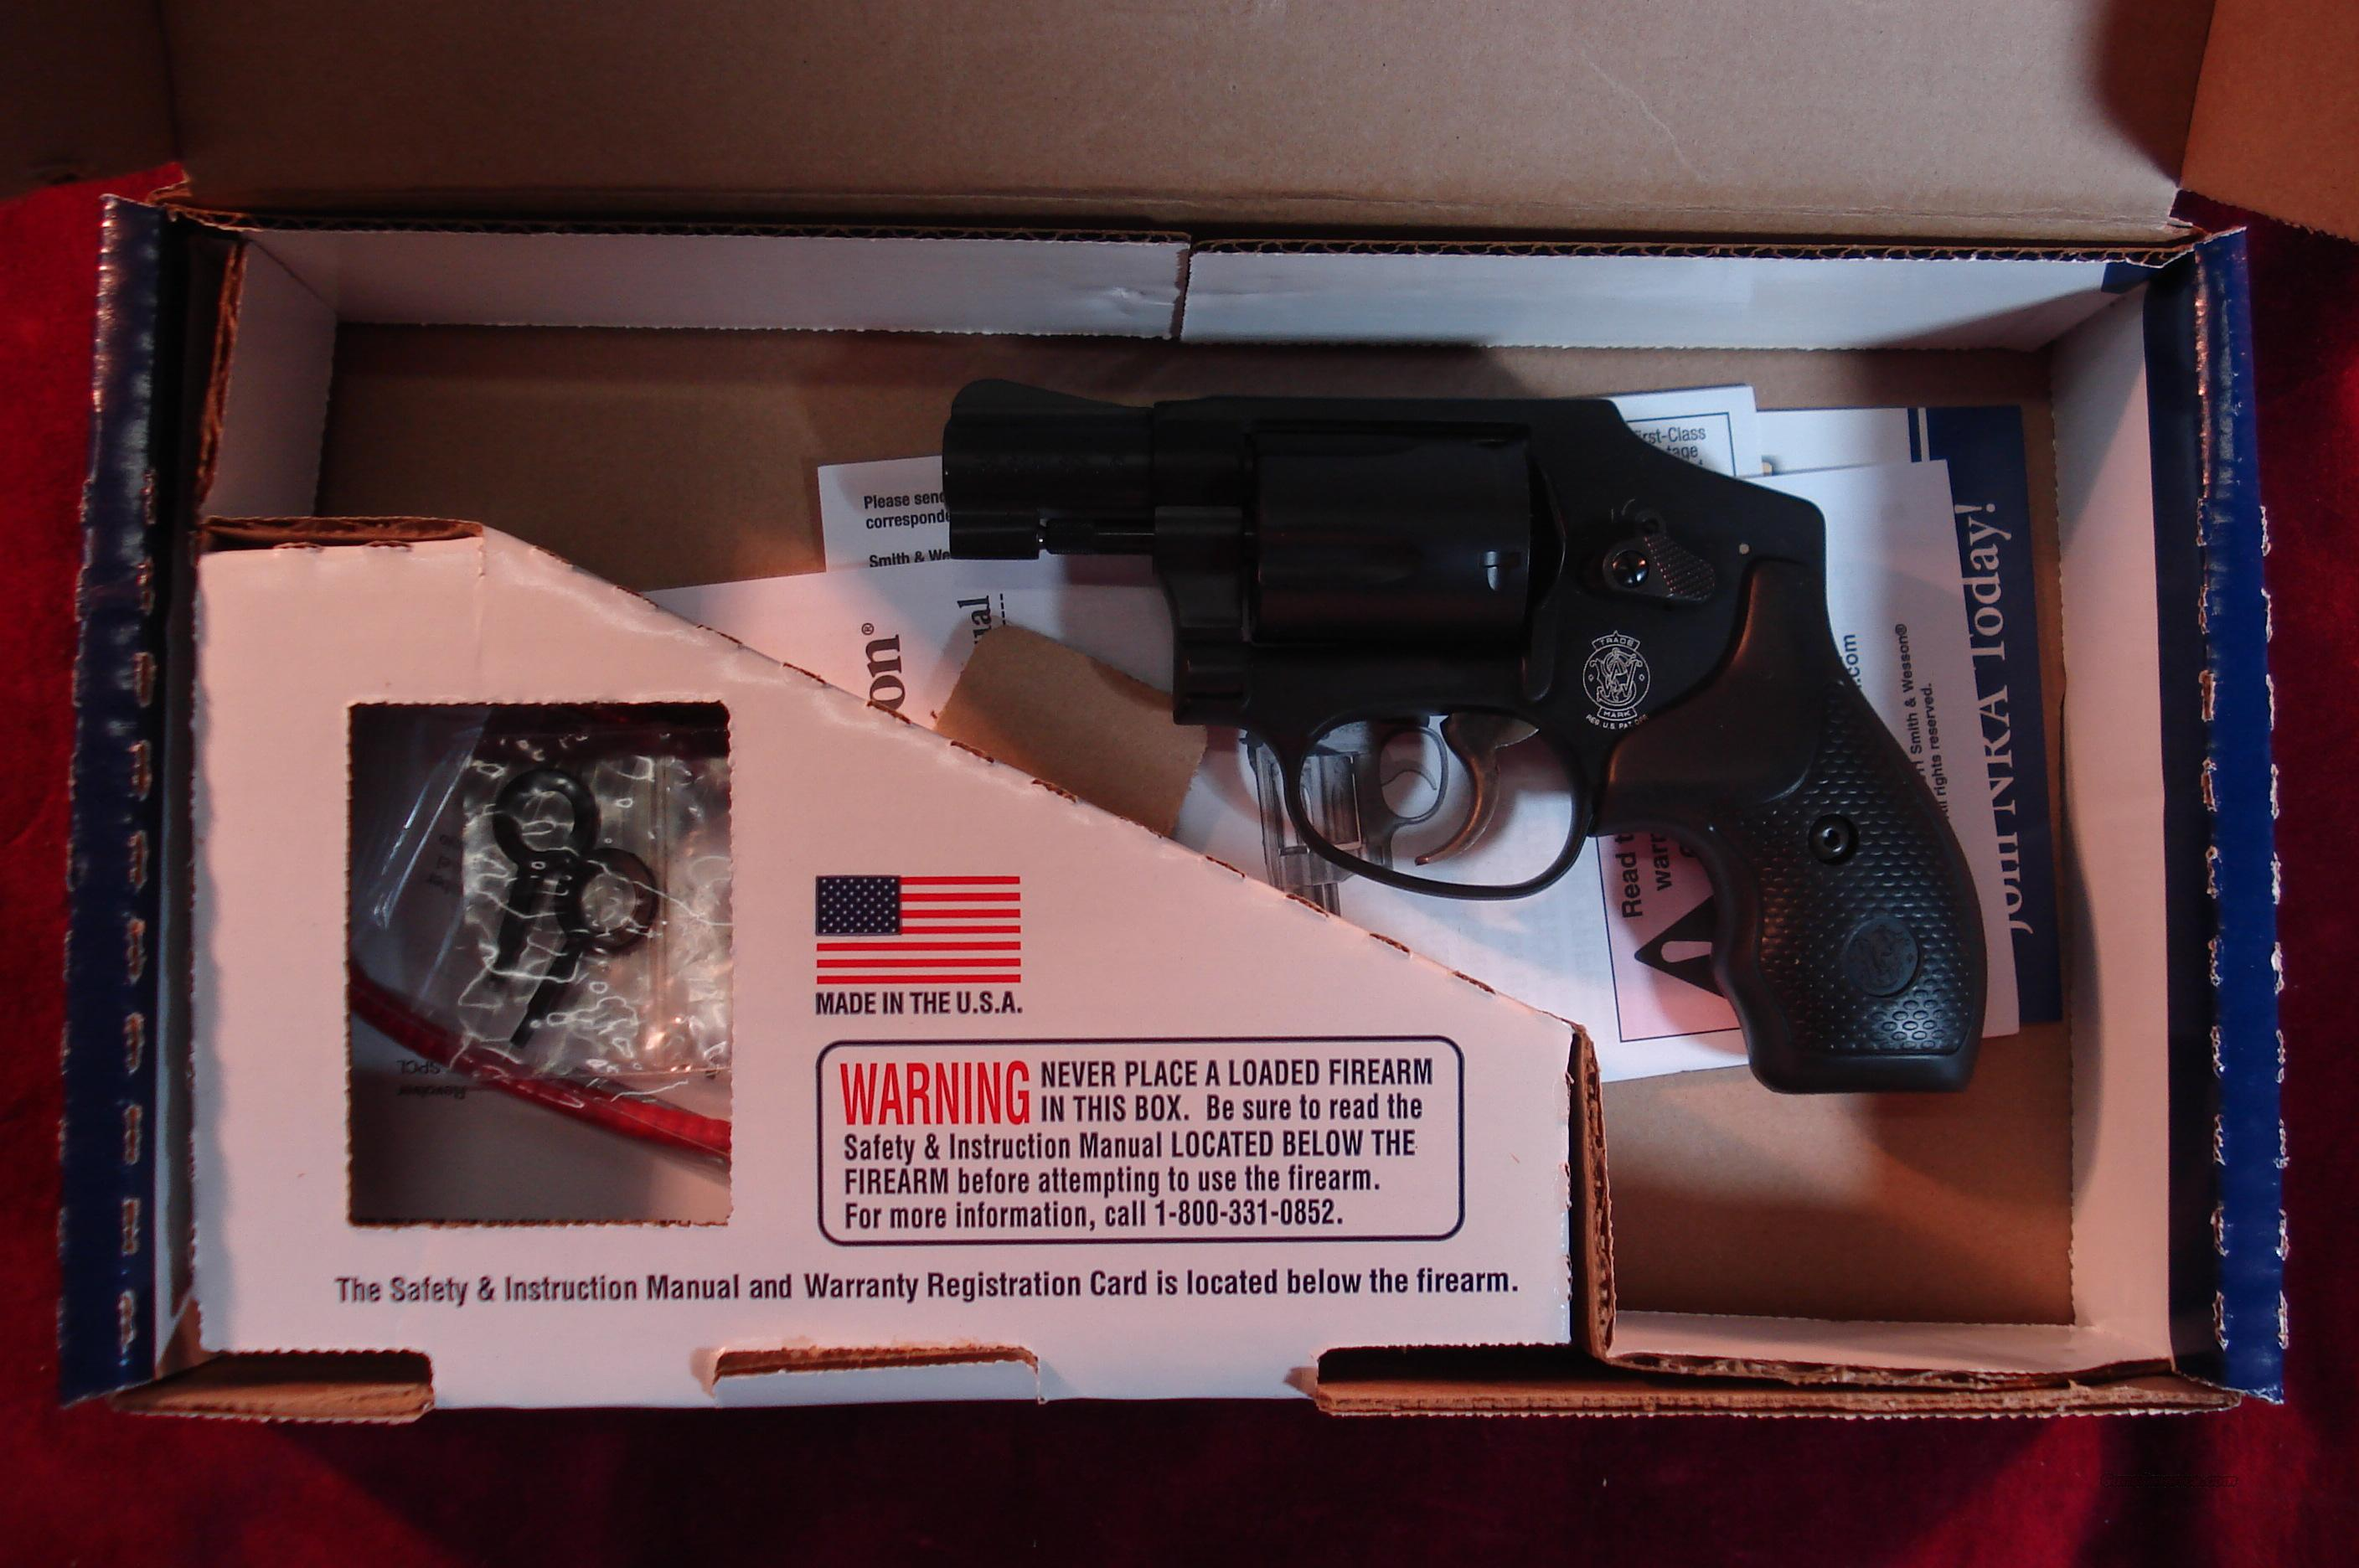 SMITH AND WESSON 442 38 SPECIAL CAL. NEW  Guns > Pistols > Smith & Wesson Revolvers > Pocket Pistols